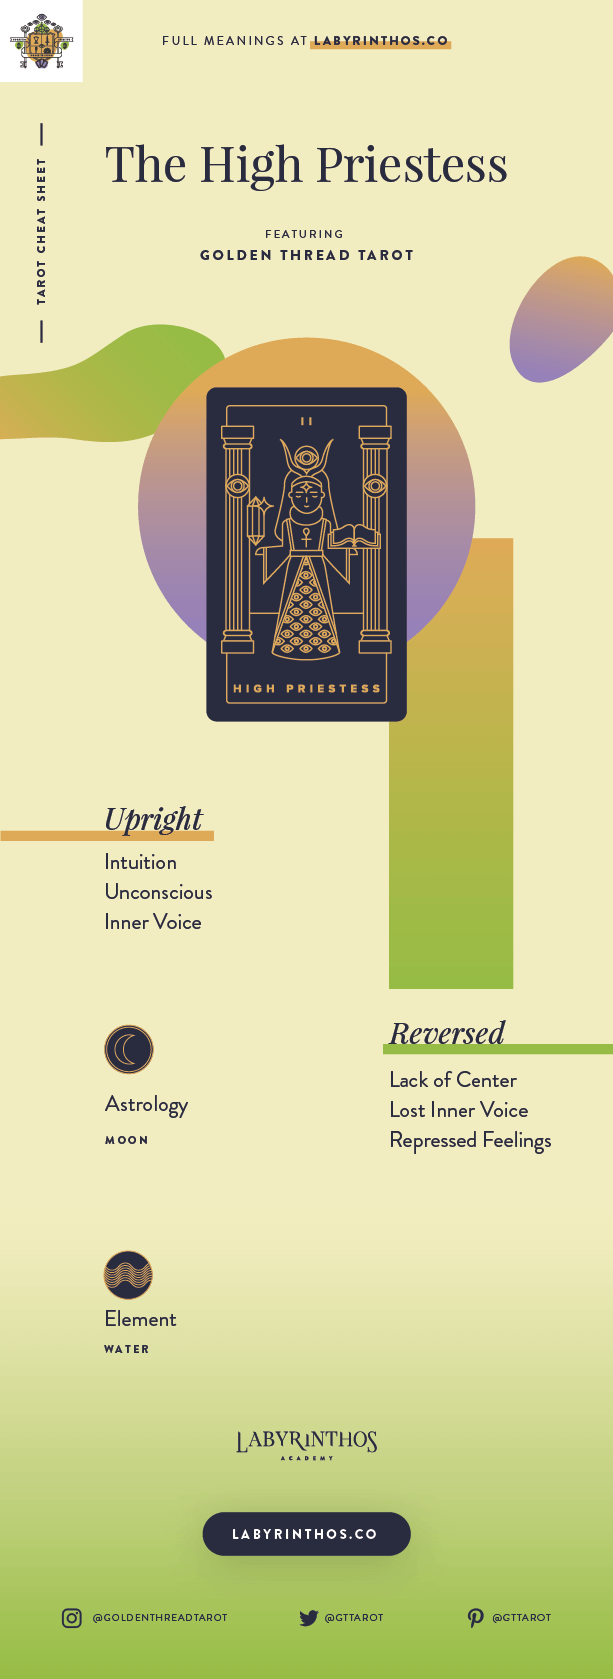 High Priestess Meaning - Tarot Card Meanings Cheat Sheet